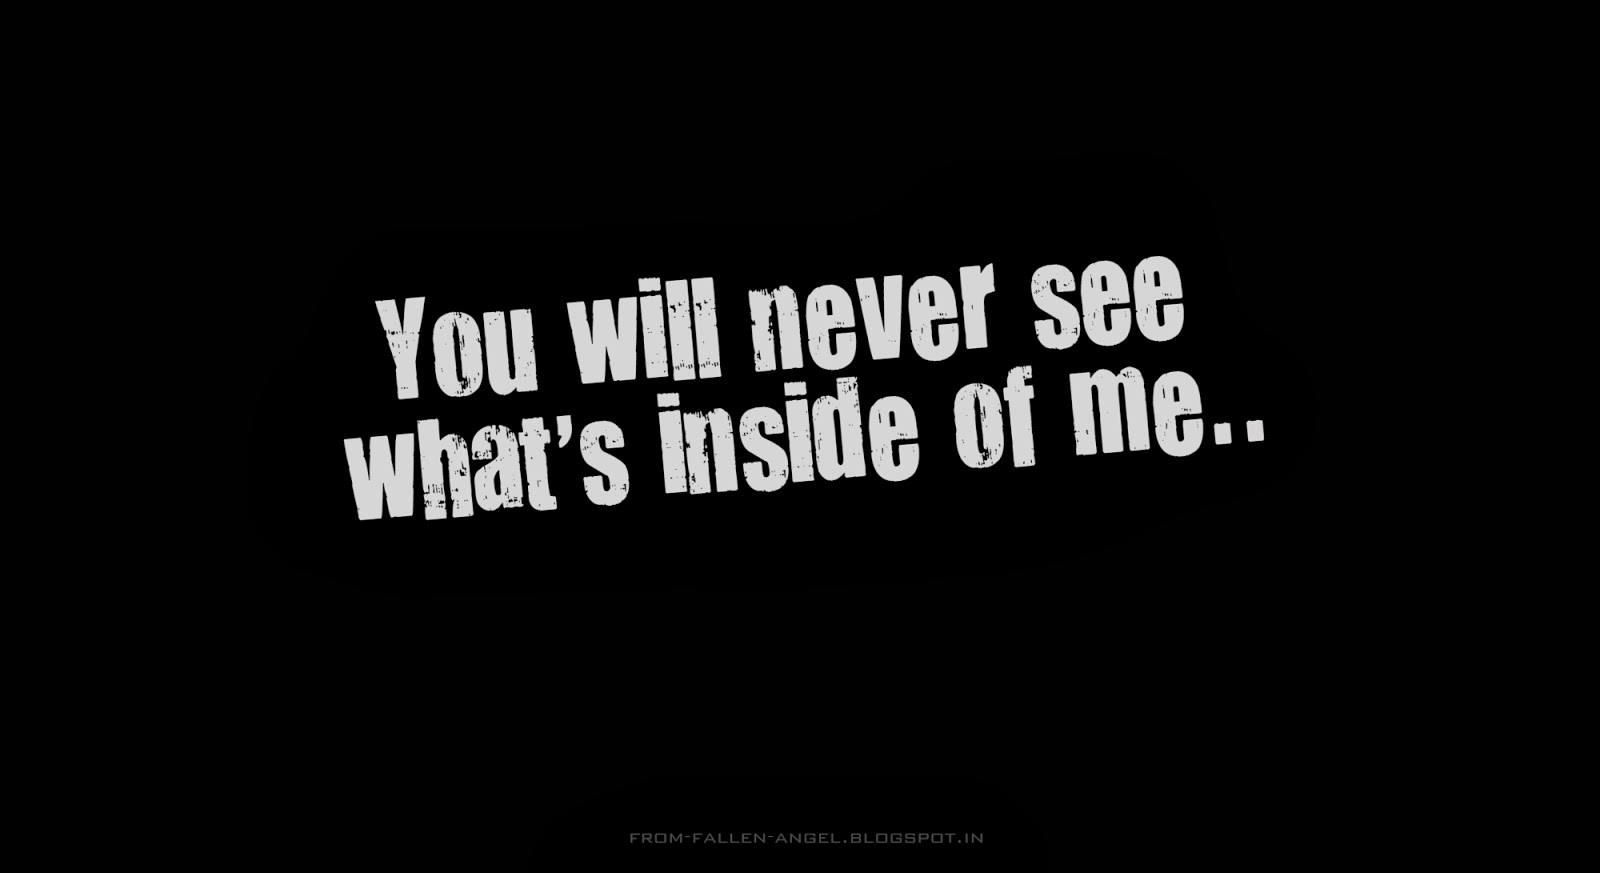 You will never see what's inside of me..